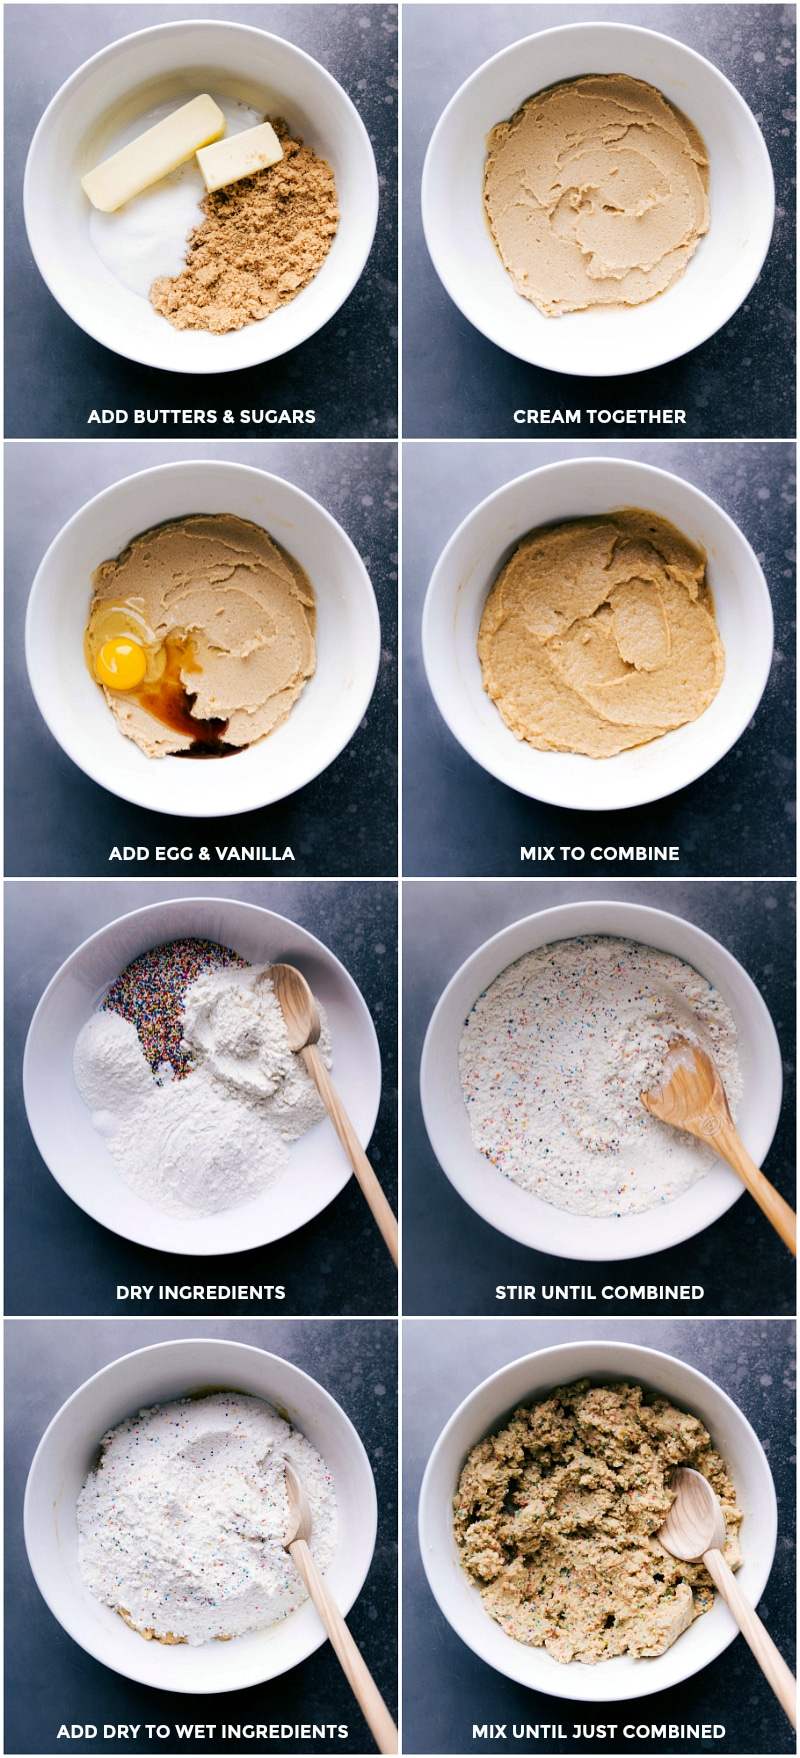 Process shots-- images of the wet and dry ingredients being prepped and mixed together.